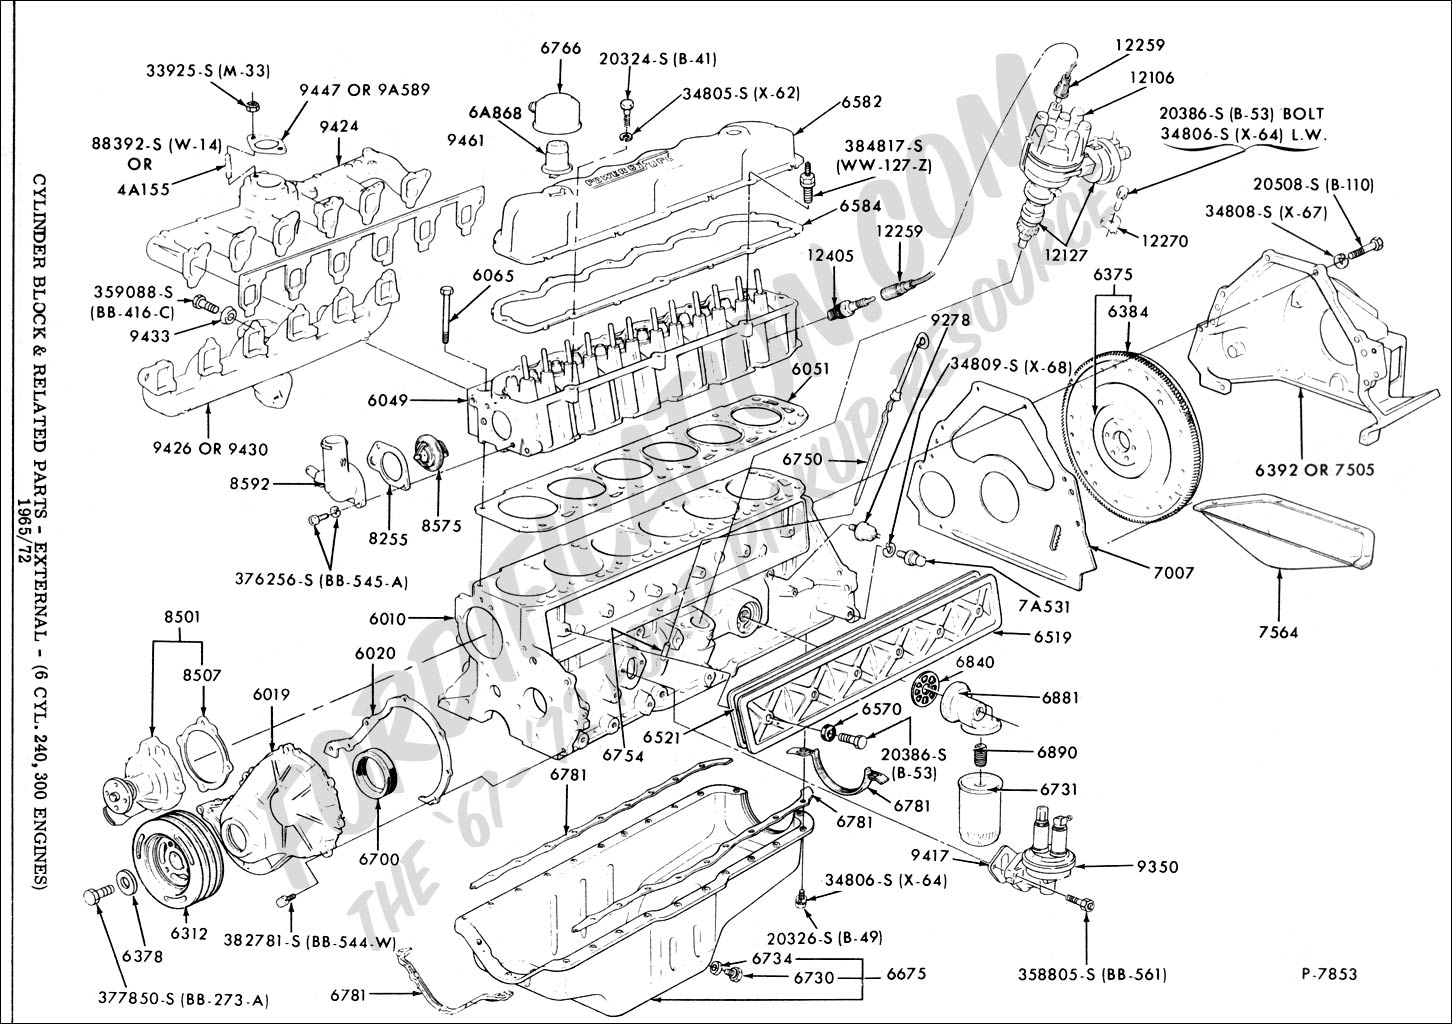 hight resolution of 302 v8 ford engine diagram 15 13 stromoeko de u2022302 v8 engine diagram tv igesetze